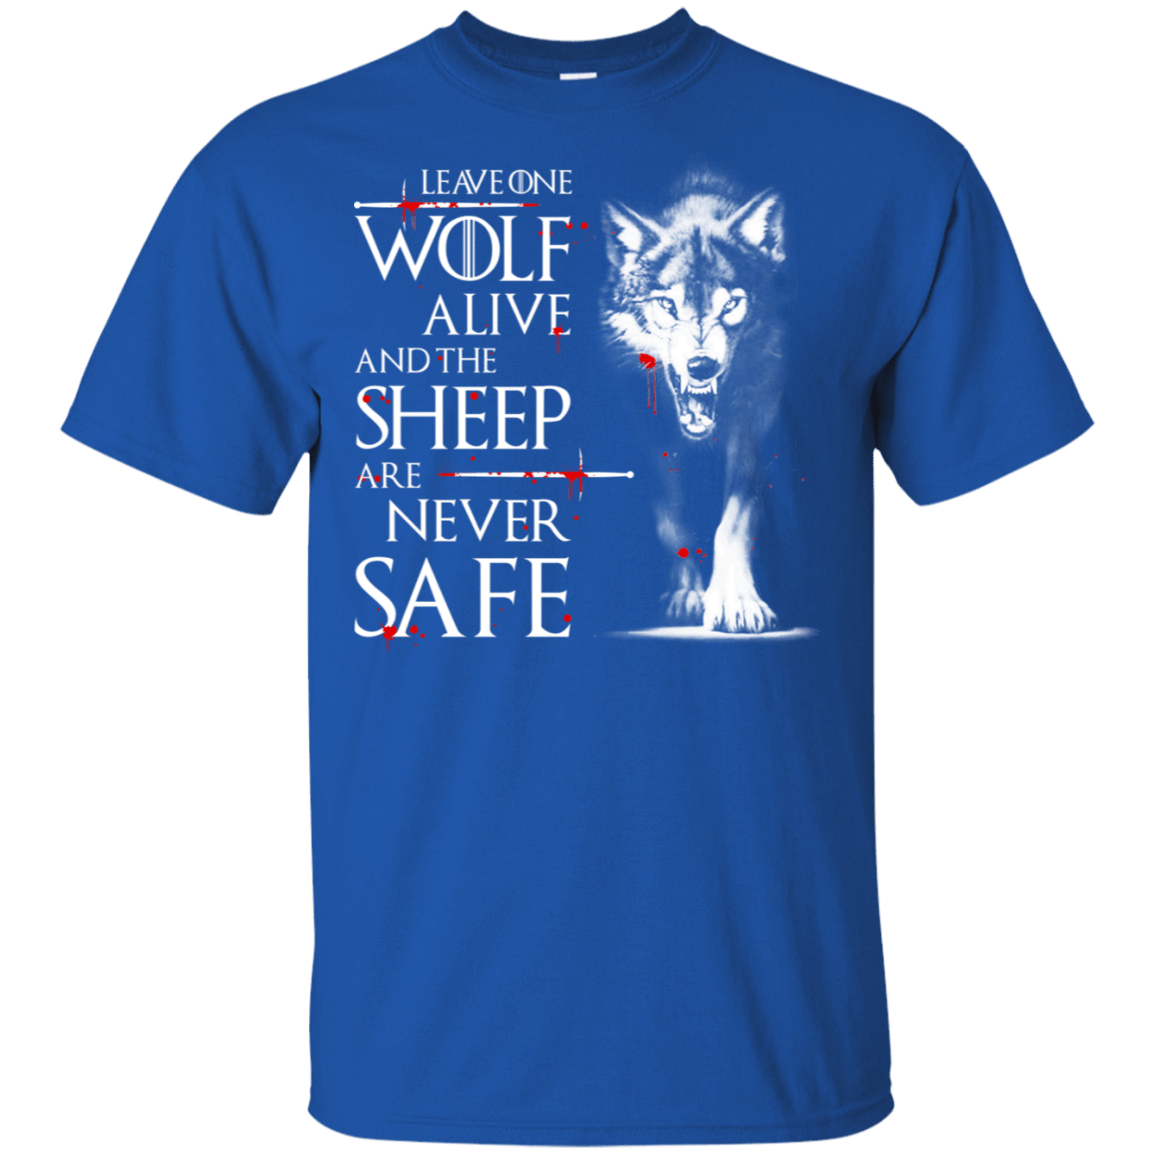 Leave One Wolf Alive And The Sheep Are Never Safe 22-110-73422197-249 - Tee Ript